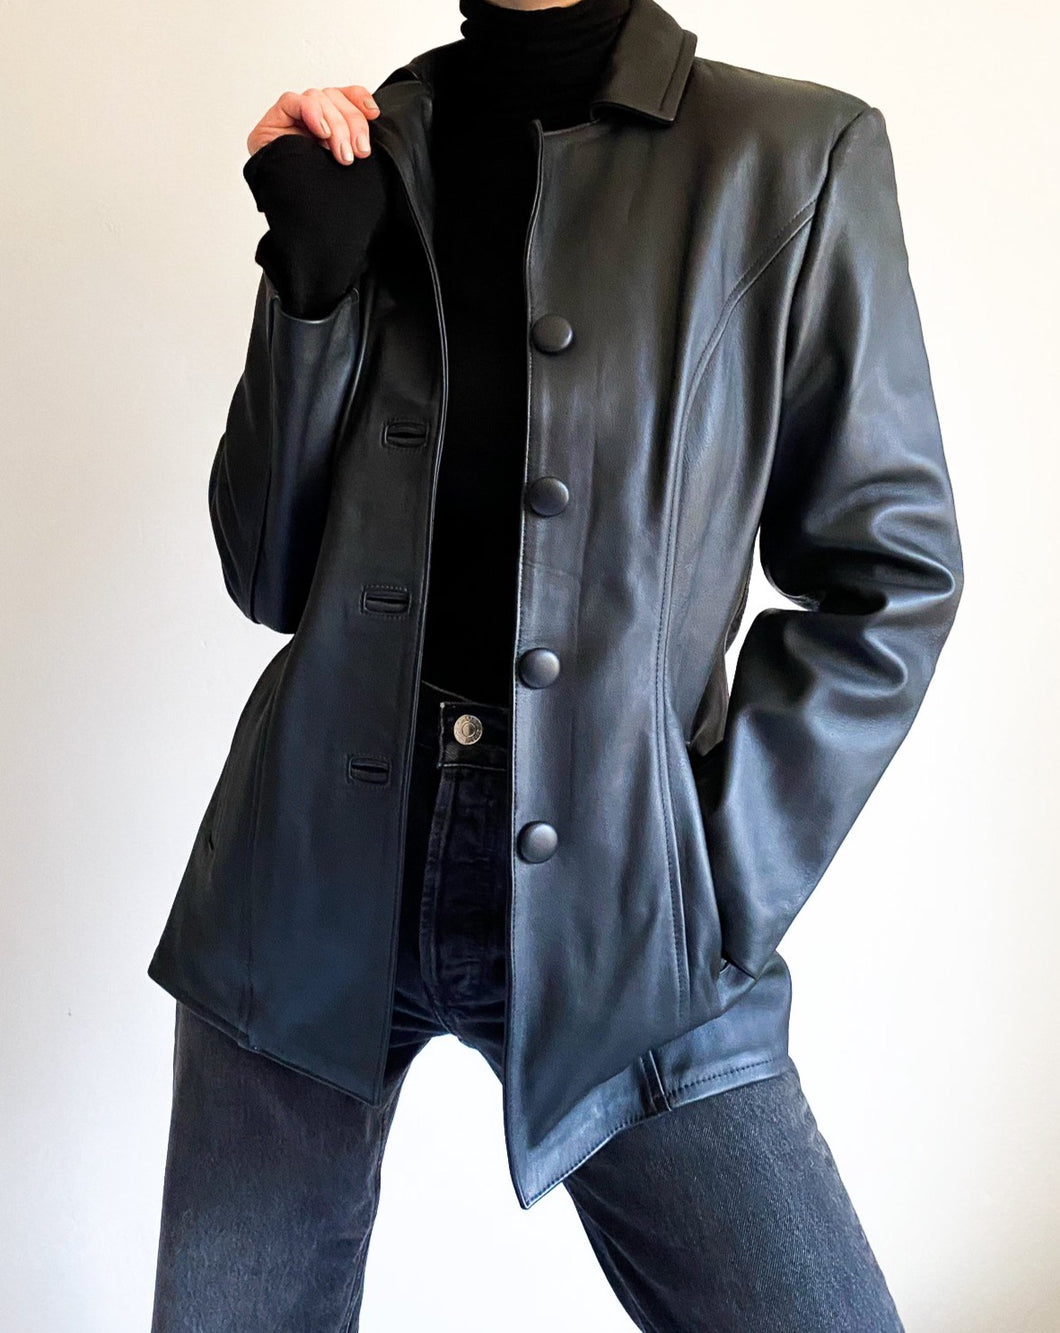 Vintage Black Leather Jacket